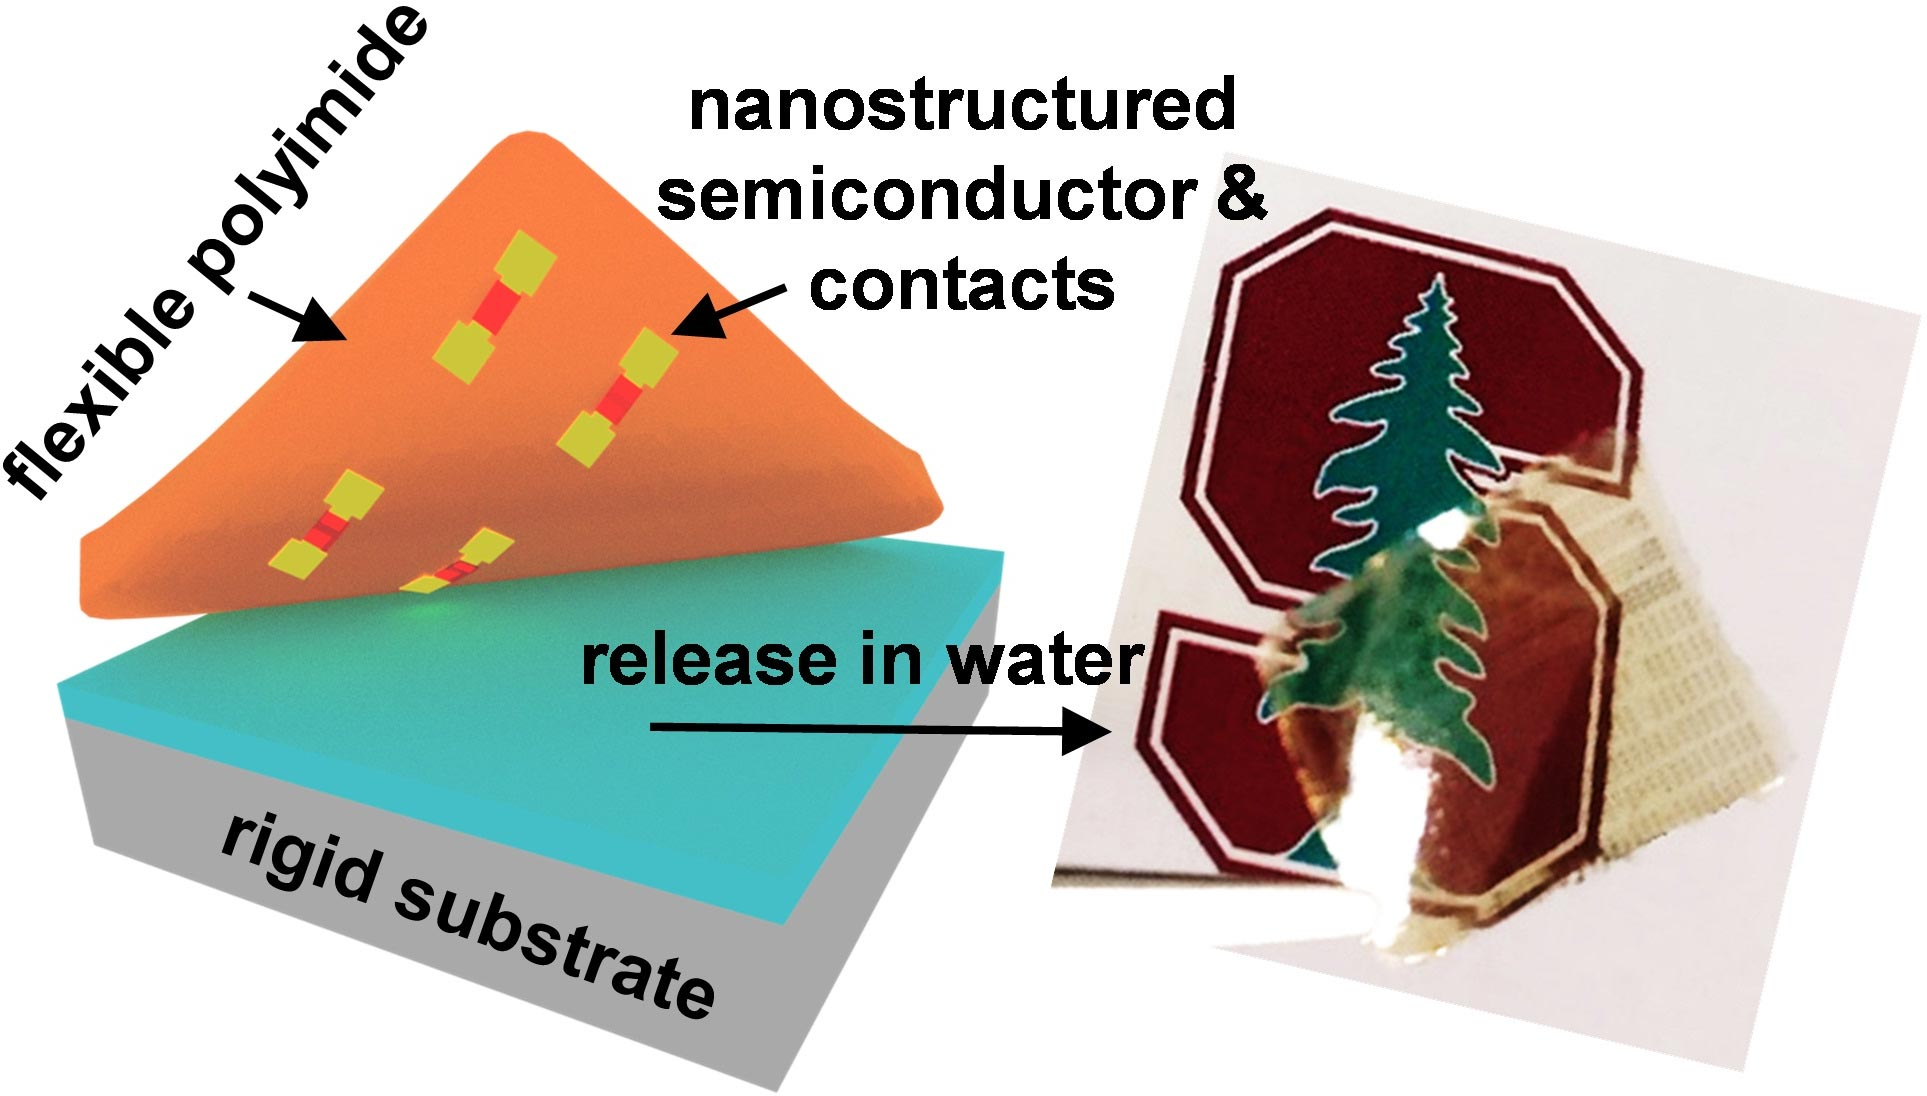 Stanford's Breakthrough New Manufacturing Technique for Ultrathin, Flexible Electronics